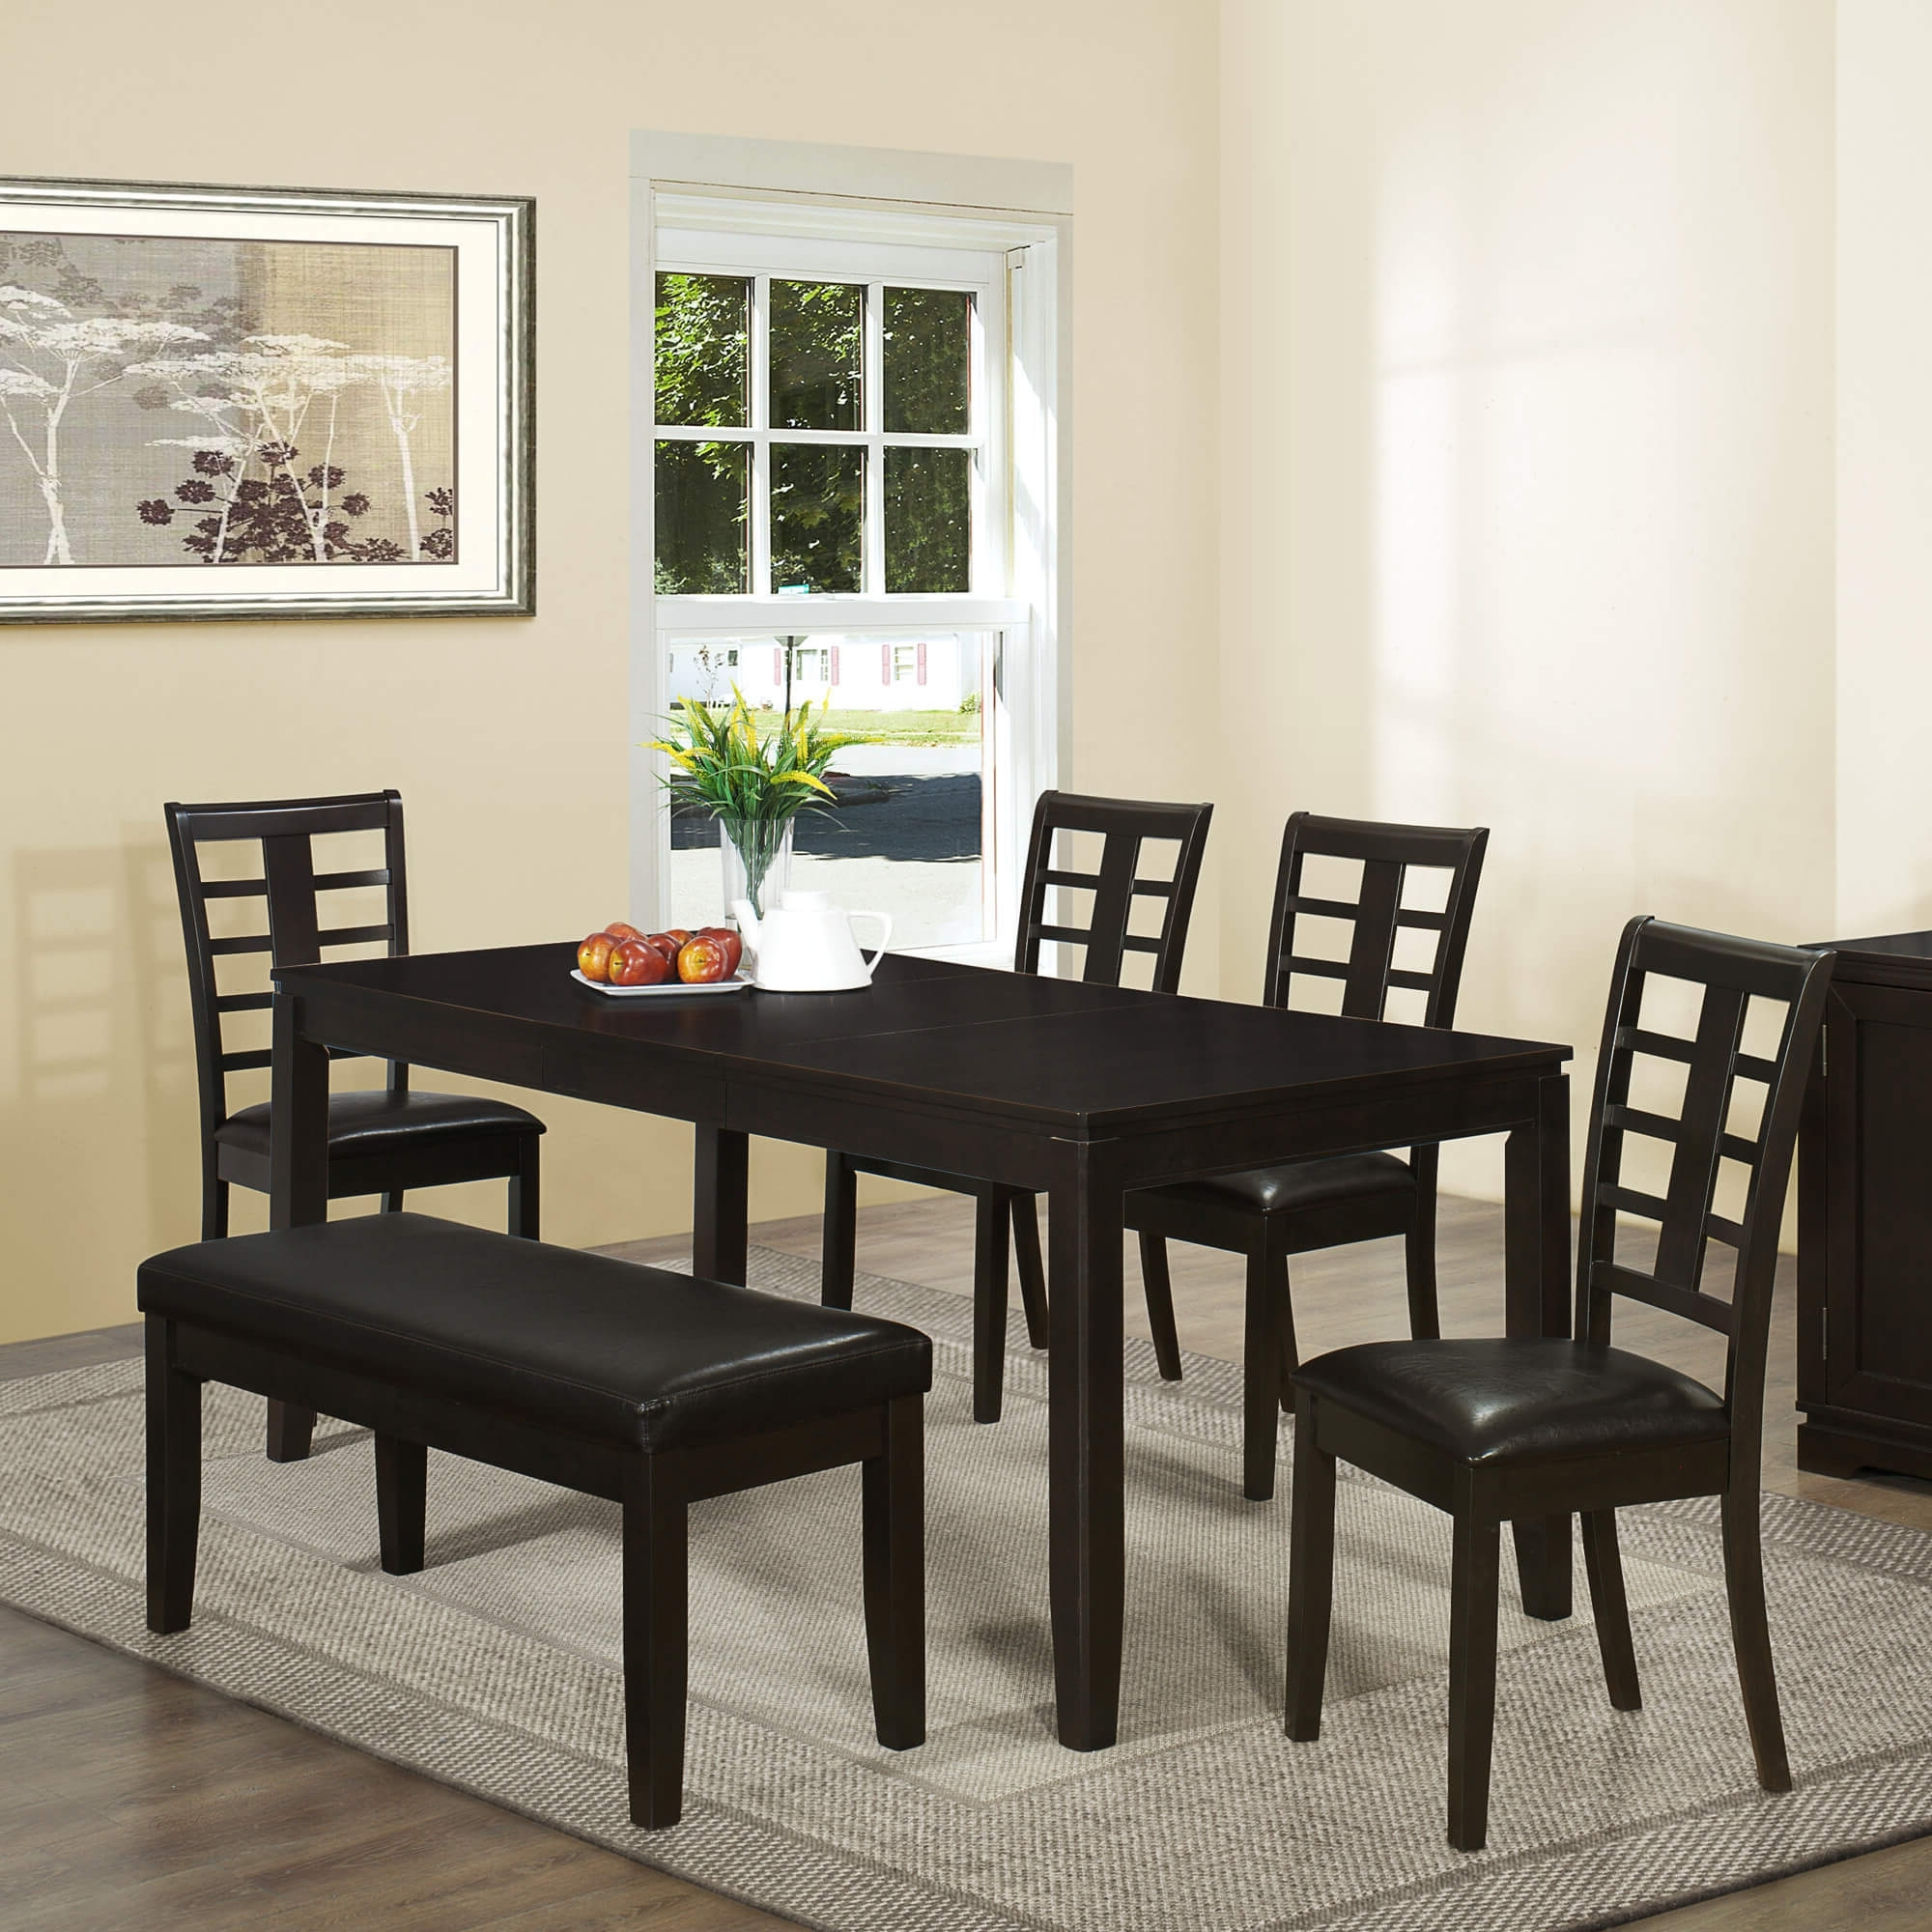 Small Dining Tables And Chairs In Preferred 26 Dining Room Sets (Big And Small) With Bench Seating (2018) (View 18 of 25)